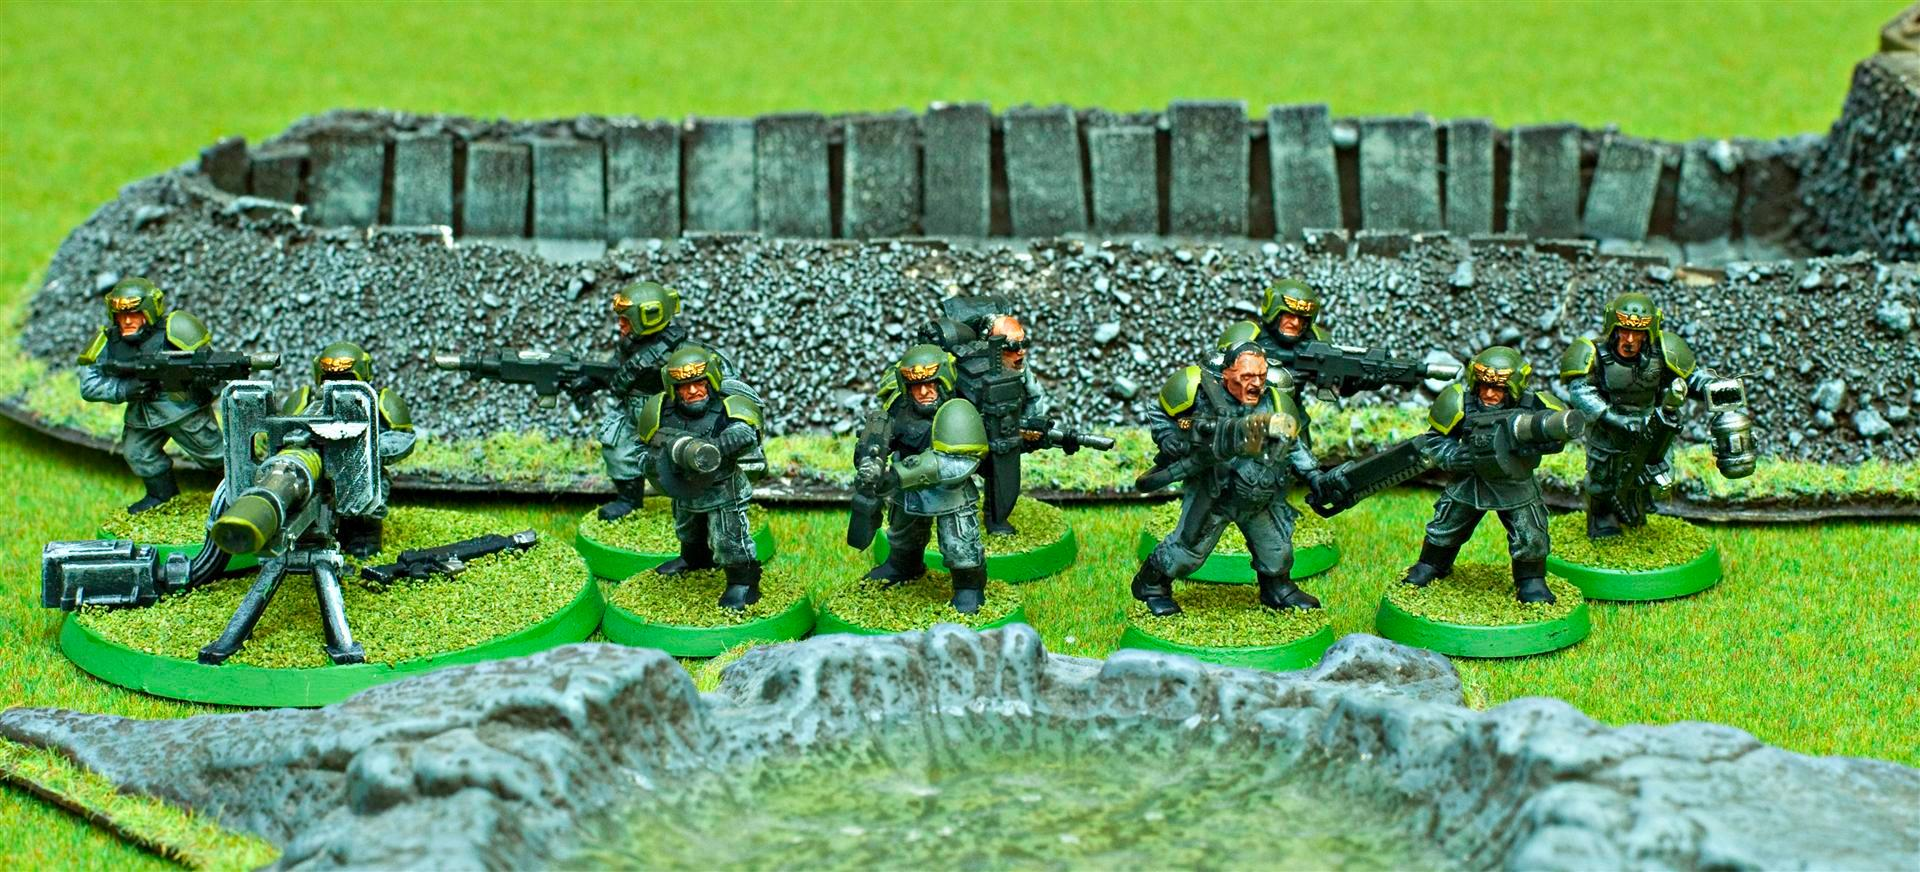 Apocalypse, Army, Astra Militarum, Autocannon, Flamer, Gaming Mat, Green, Grey, Guard, Imperial, Imperial Guard, Imperials, Meltabomb, Plasma, Sgt, Troop Choice, Troops, Vet Squad, Veteran, Veteran Squad